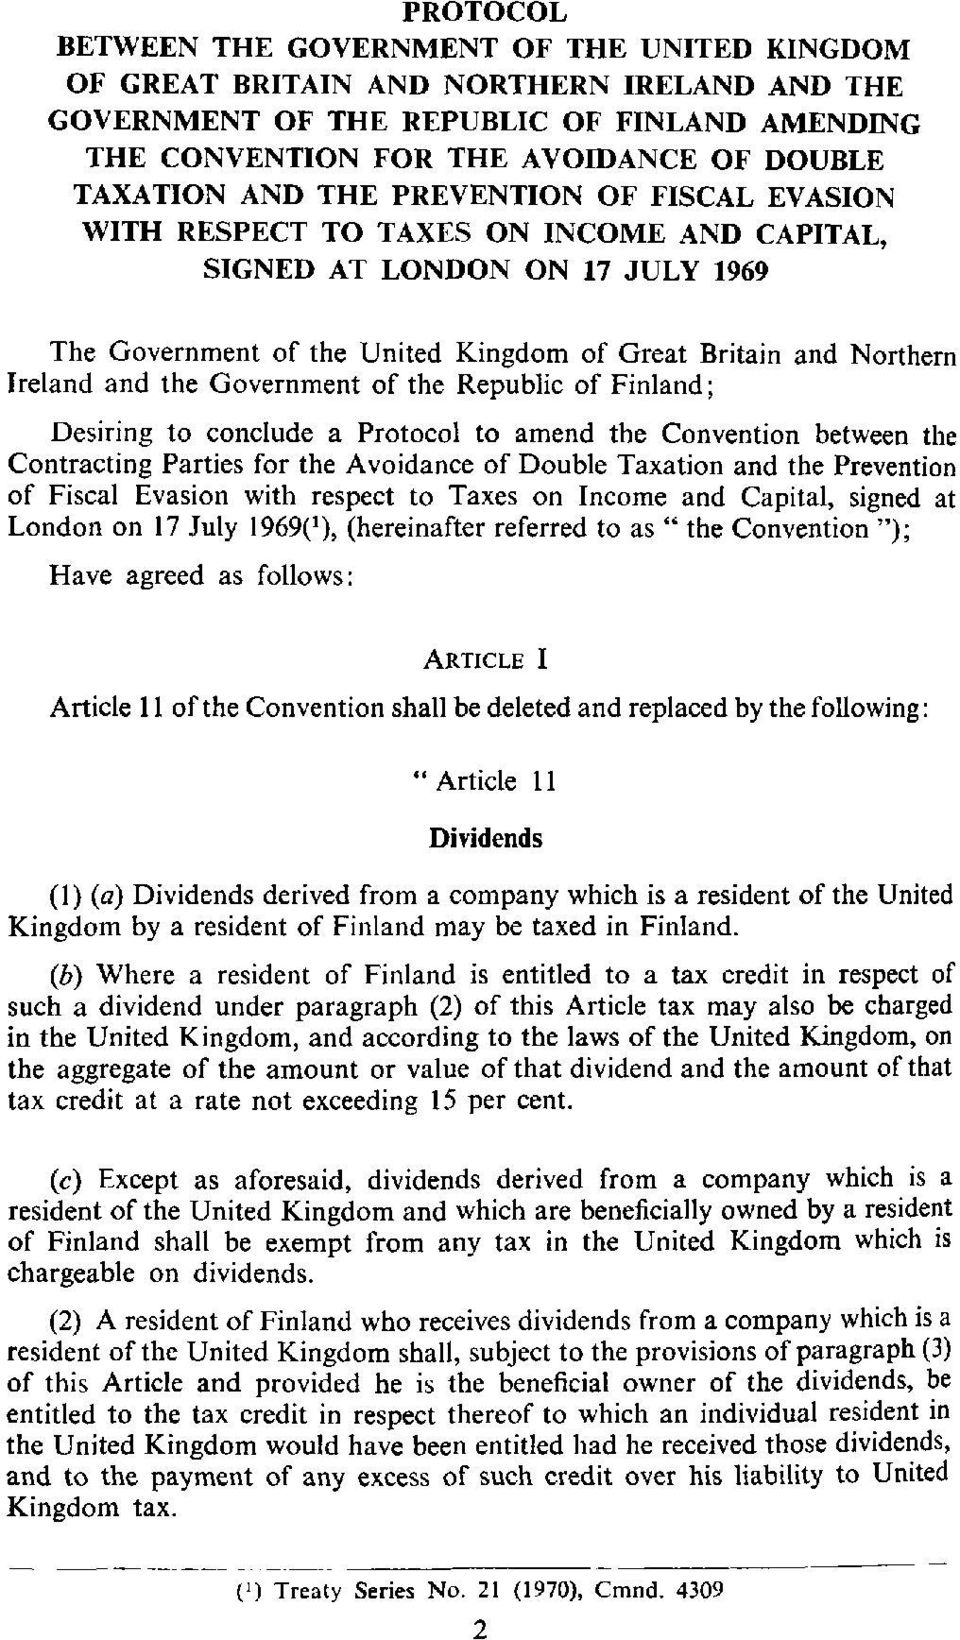 Government of the Republic of Finland; Desiring to conclude a Protocol to amend the Convention between the Contracting Parties for the Avoidance of Double Taxation and the Prevention of Fiscal